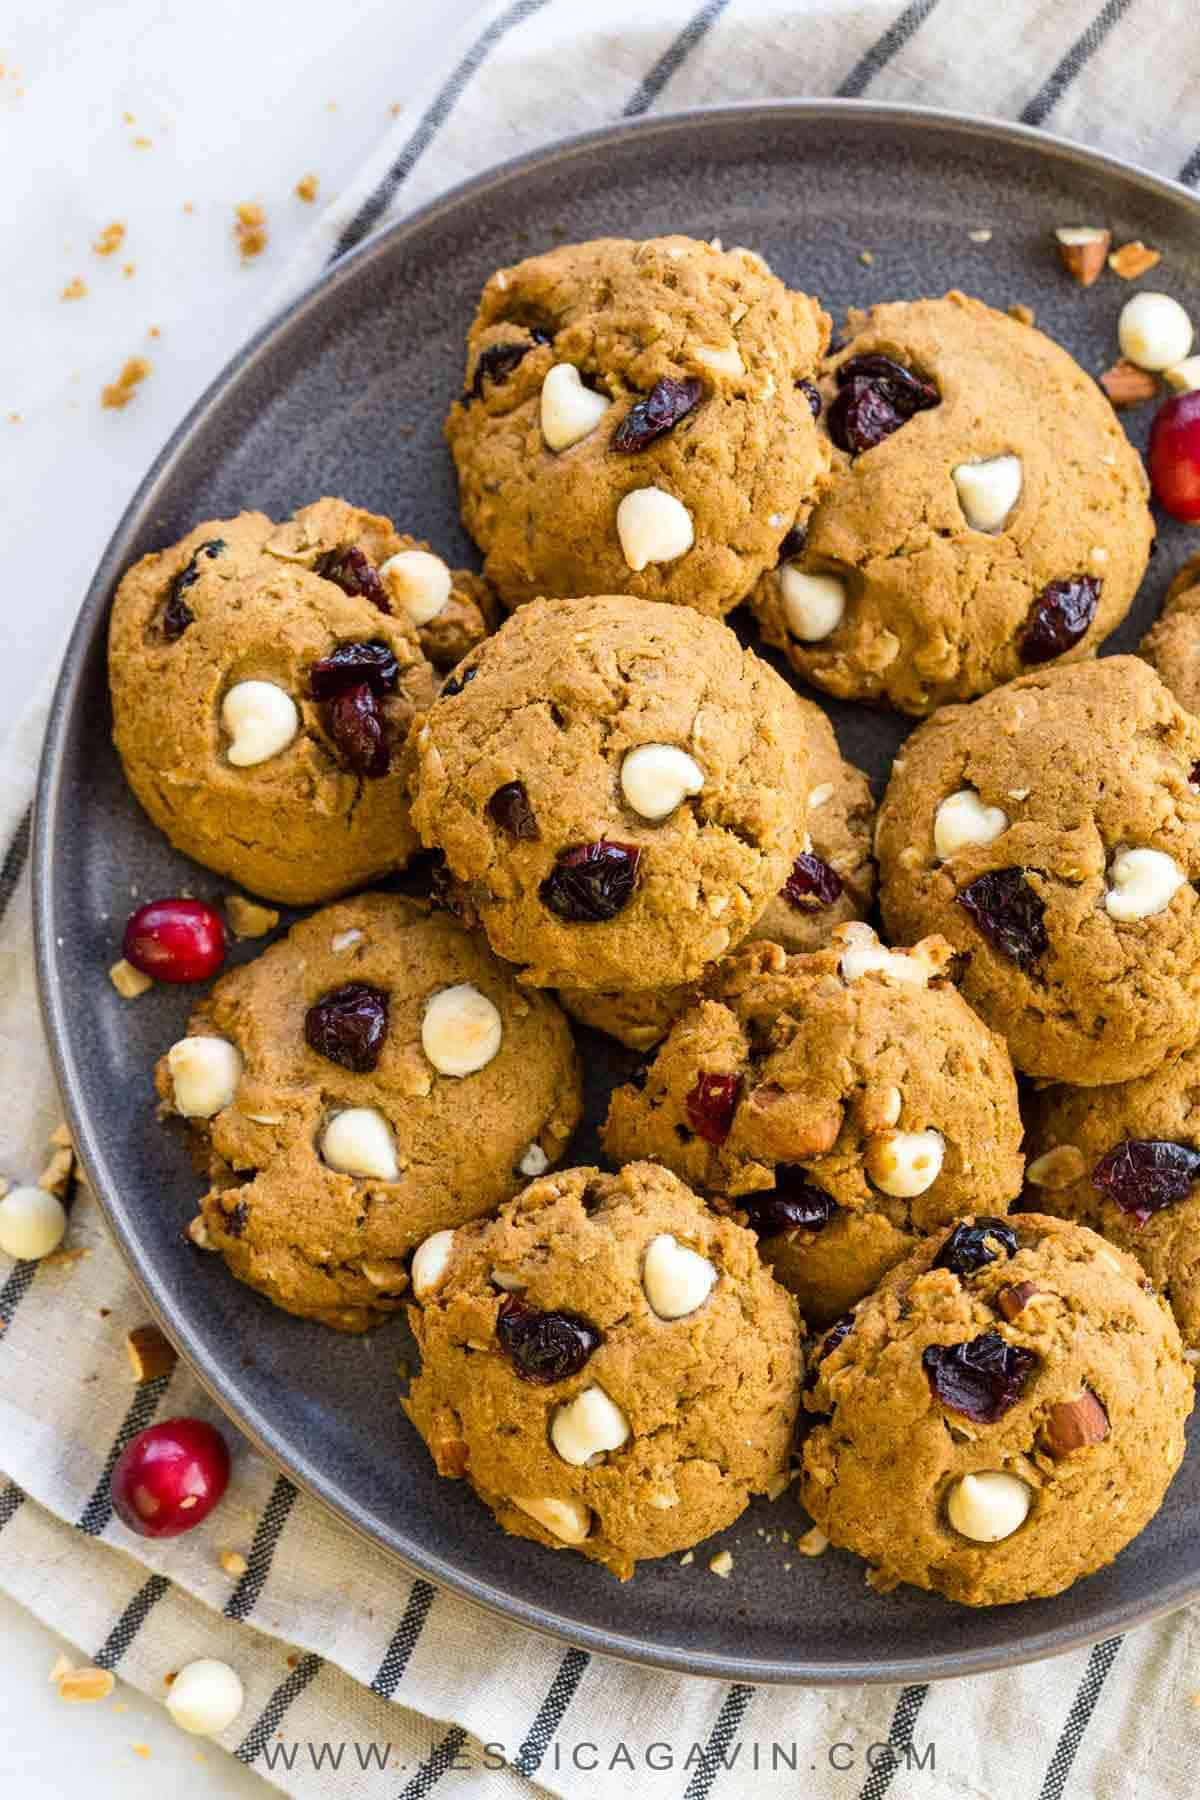 Gluten-free persimmon cookies with cranberries, white chocolate chips, and almonds. A delicious treat for everyone, even those with a gluten sensitivity. #glutenfree #cookies #baking #persimmons